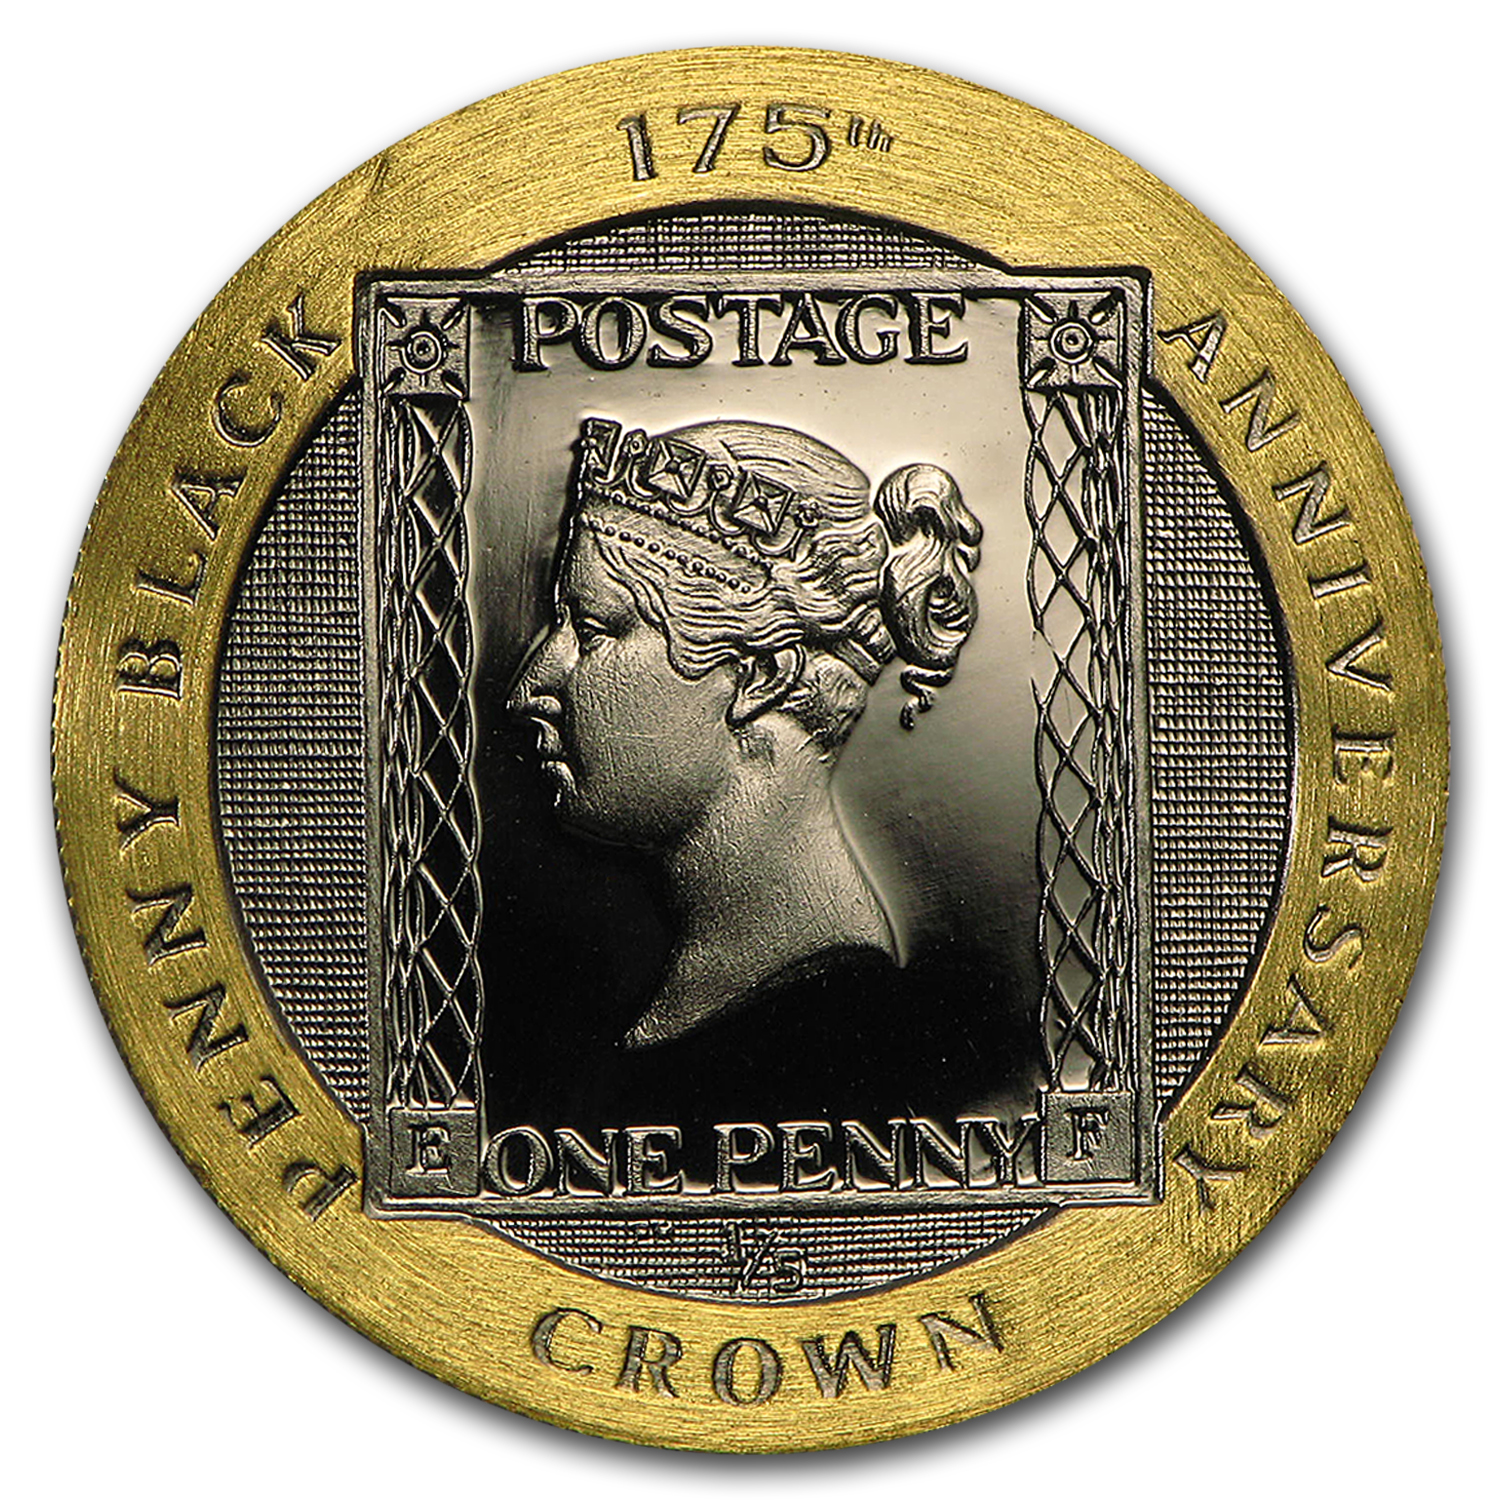 2015 Isle of Man Gold 1/5 Crown 175th Anniv Penny Black Proof